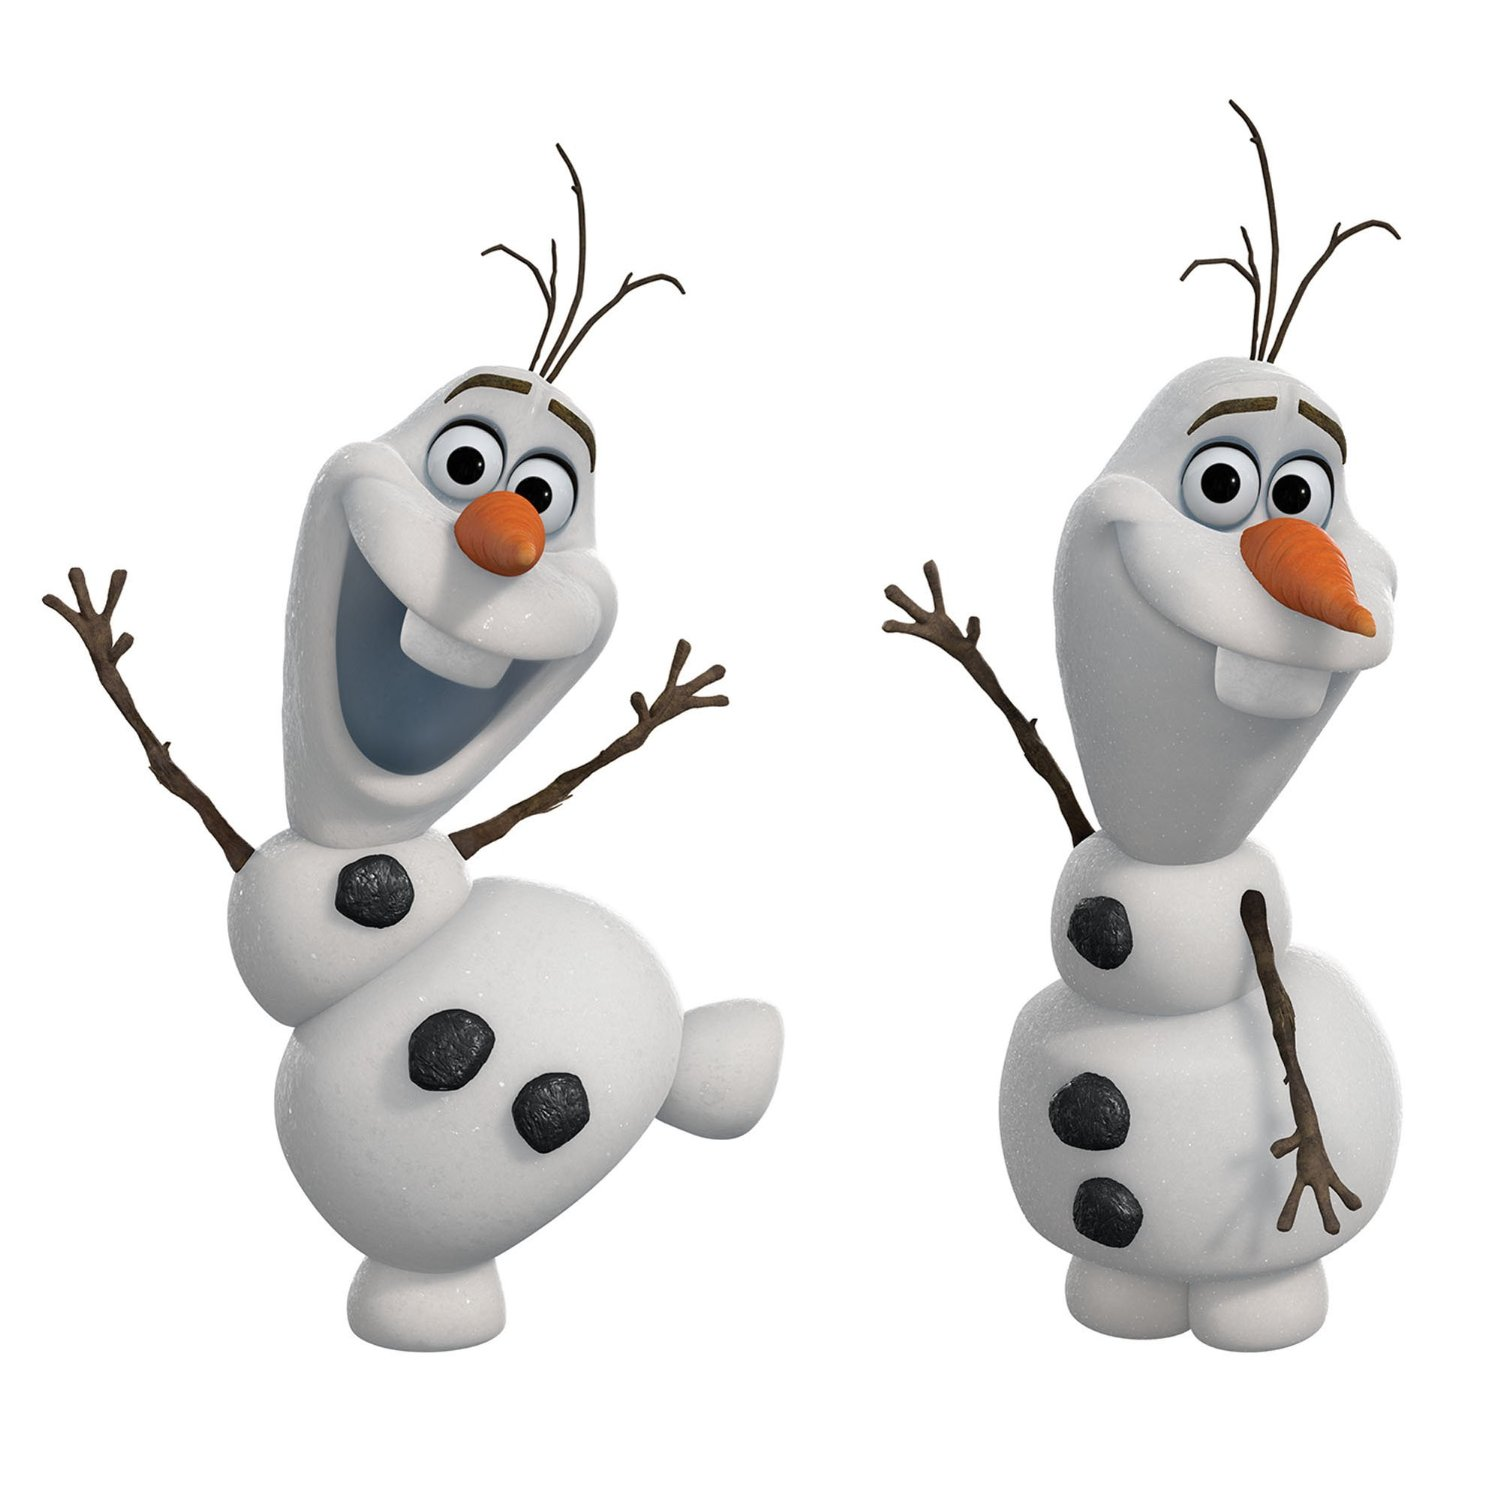 Olaf Wallpapers HD White Background 1500x1500